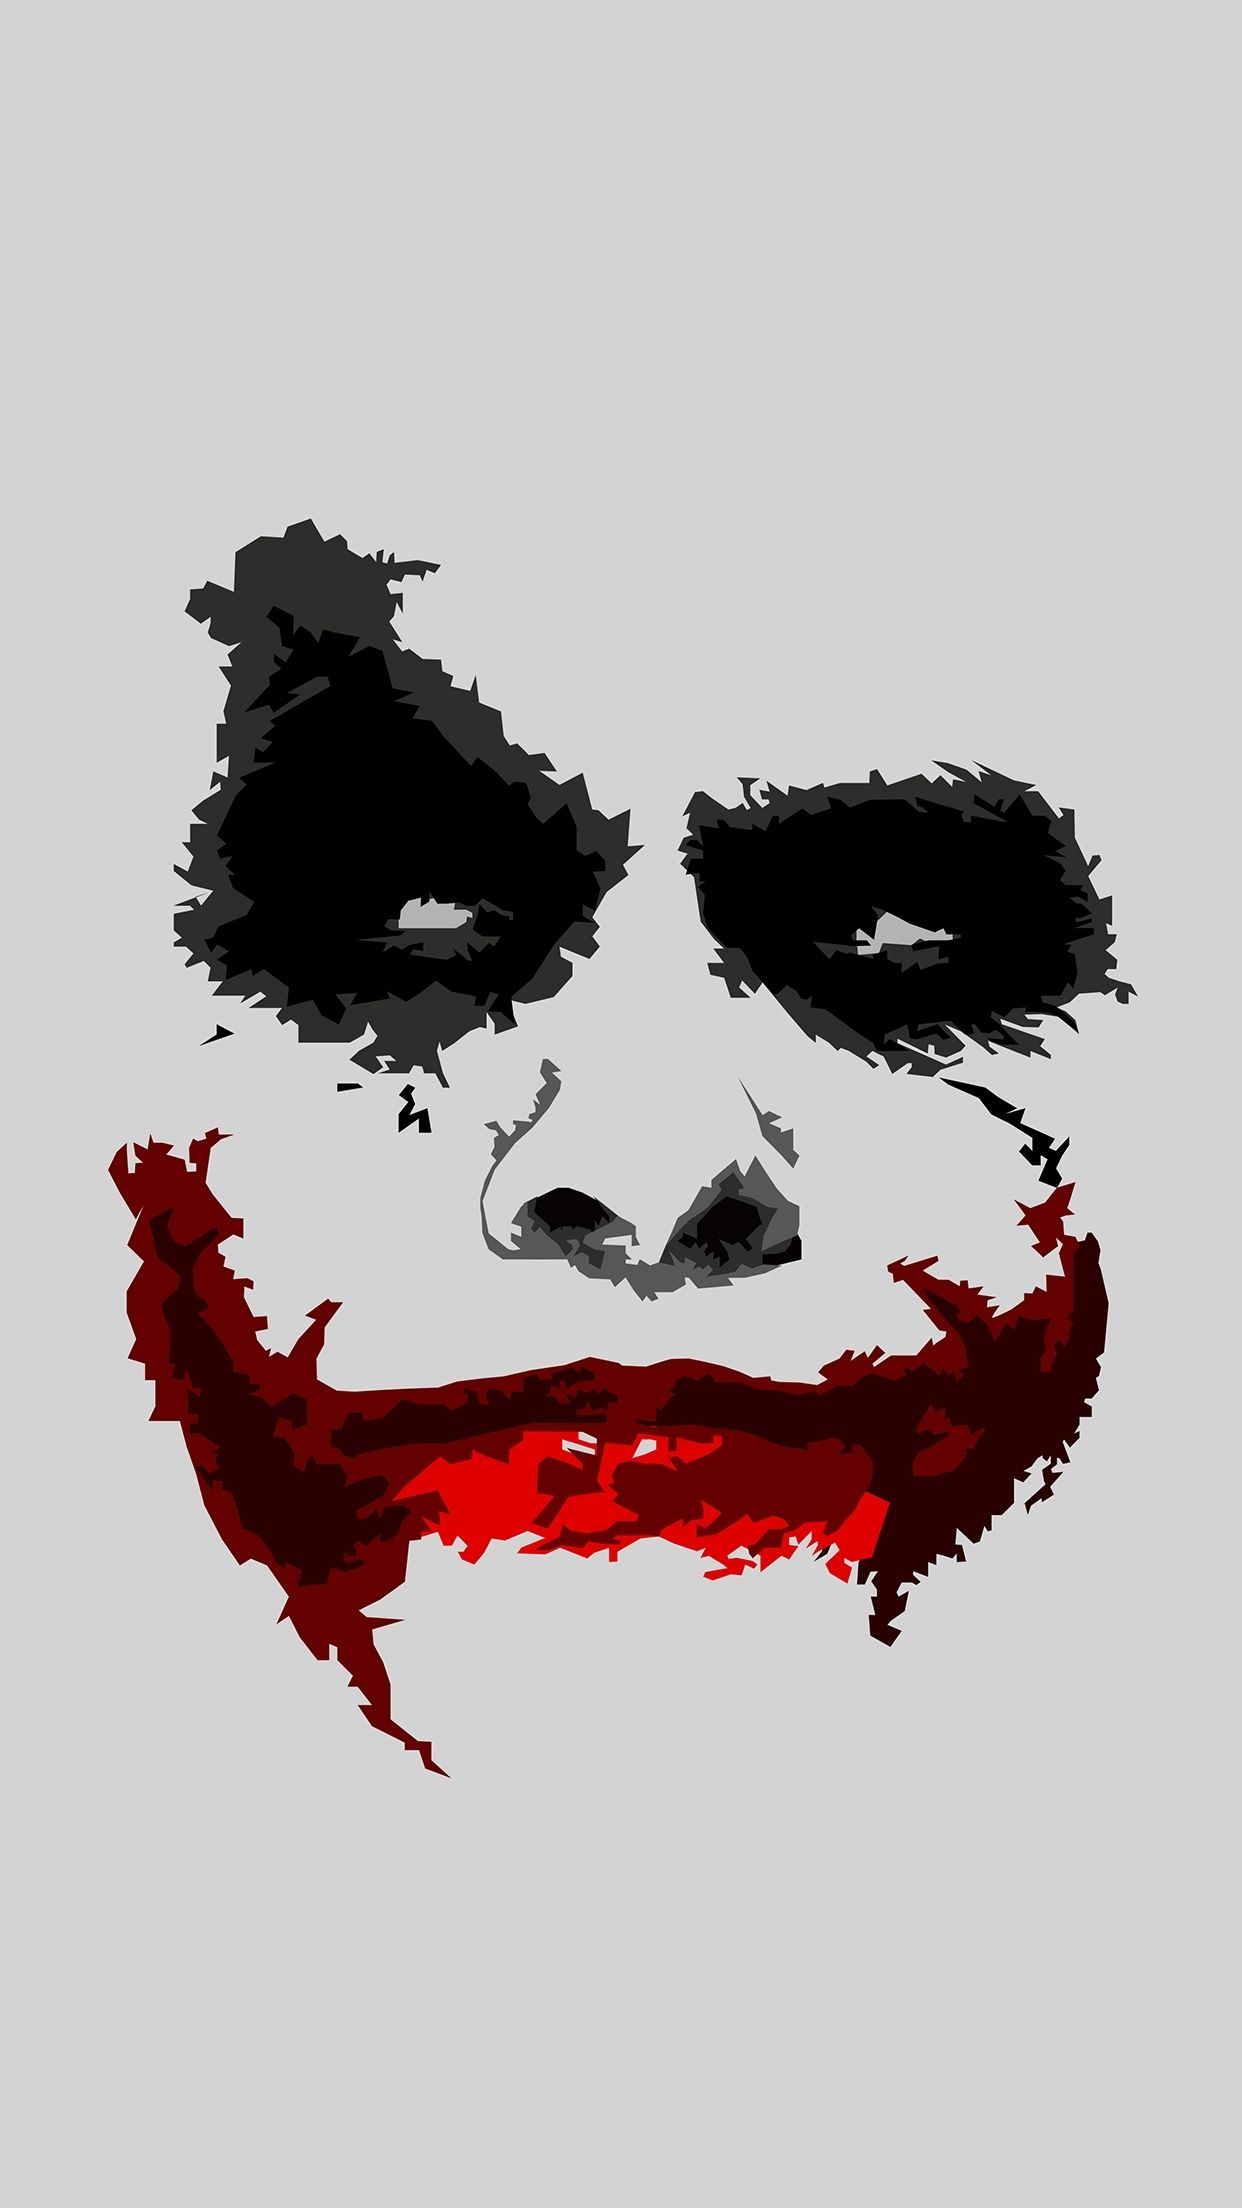 The Joker Iphone Wallpaper Hd